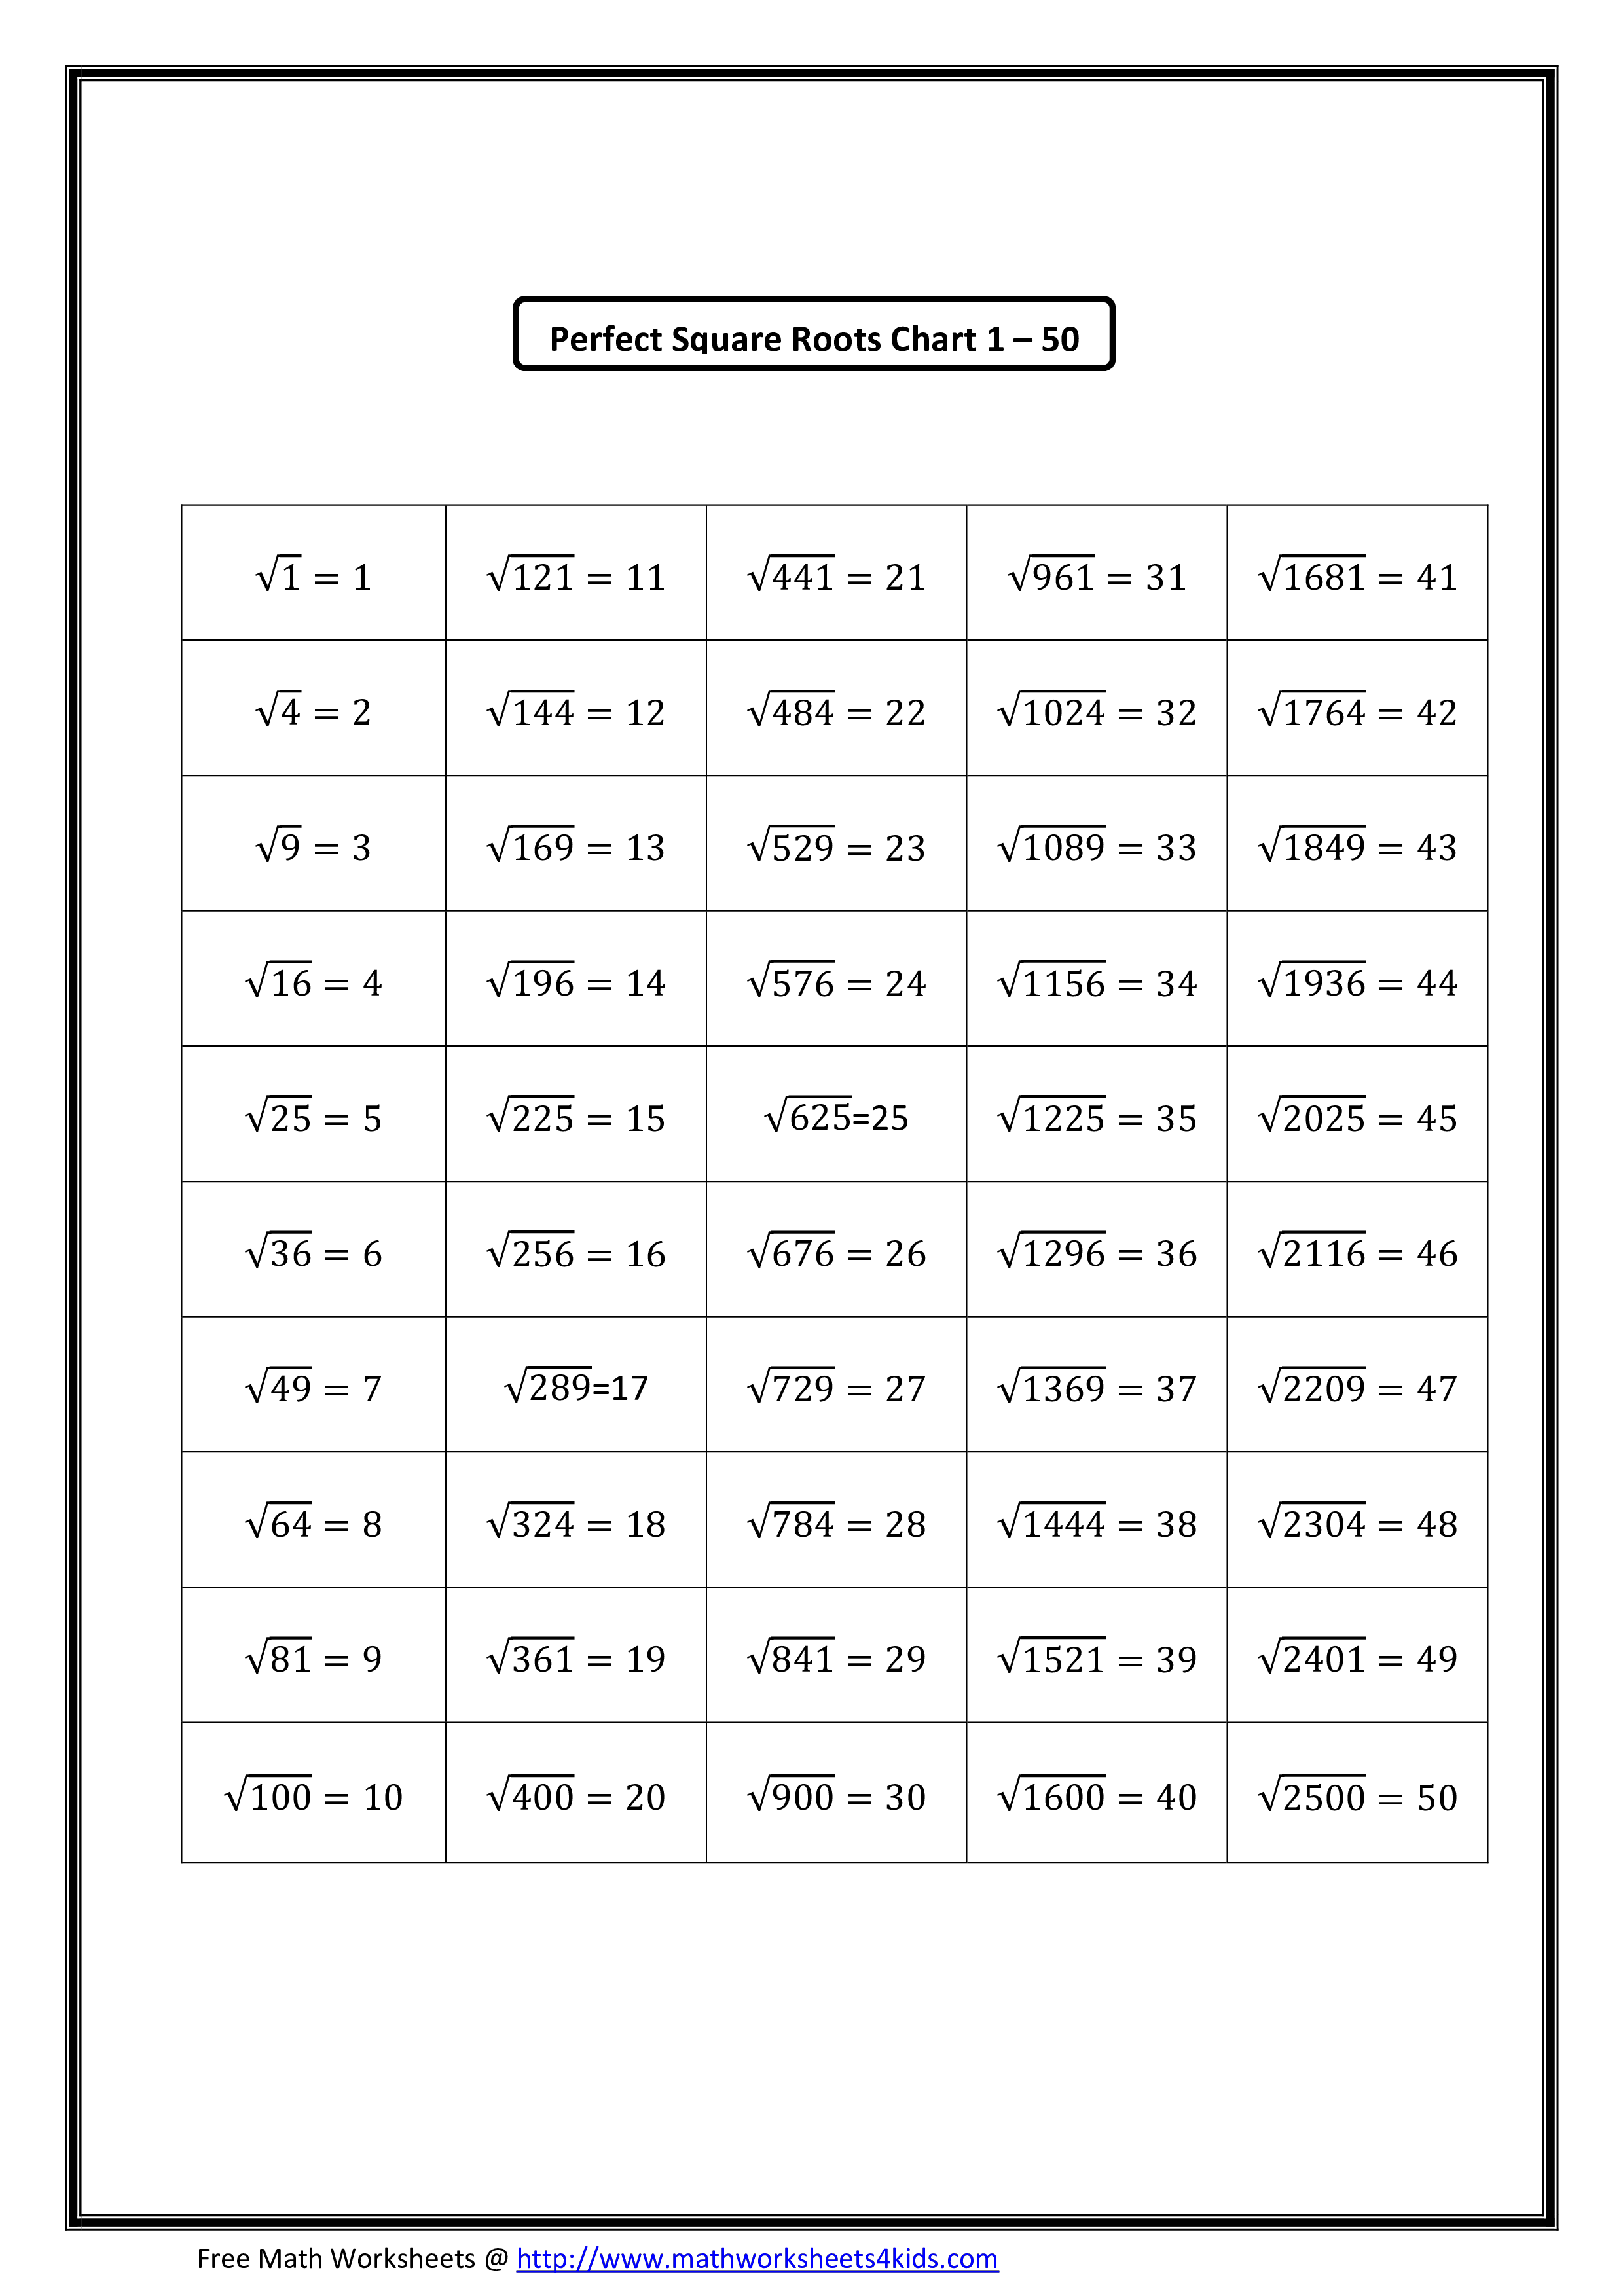 Perfect Square Root Chart